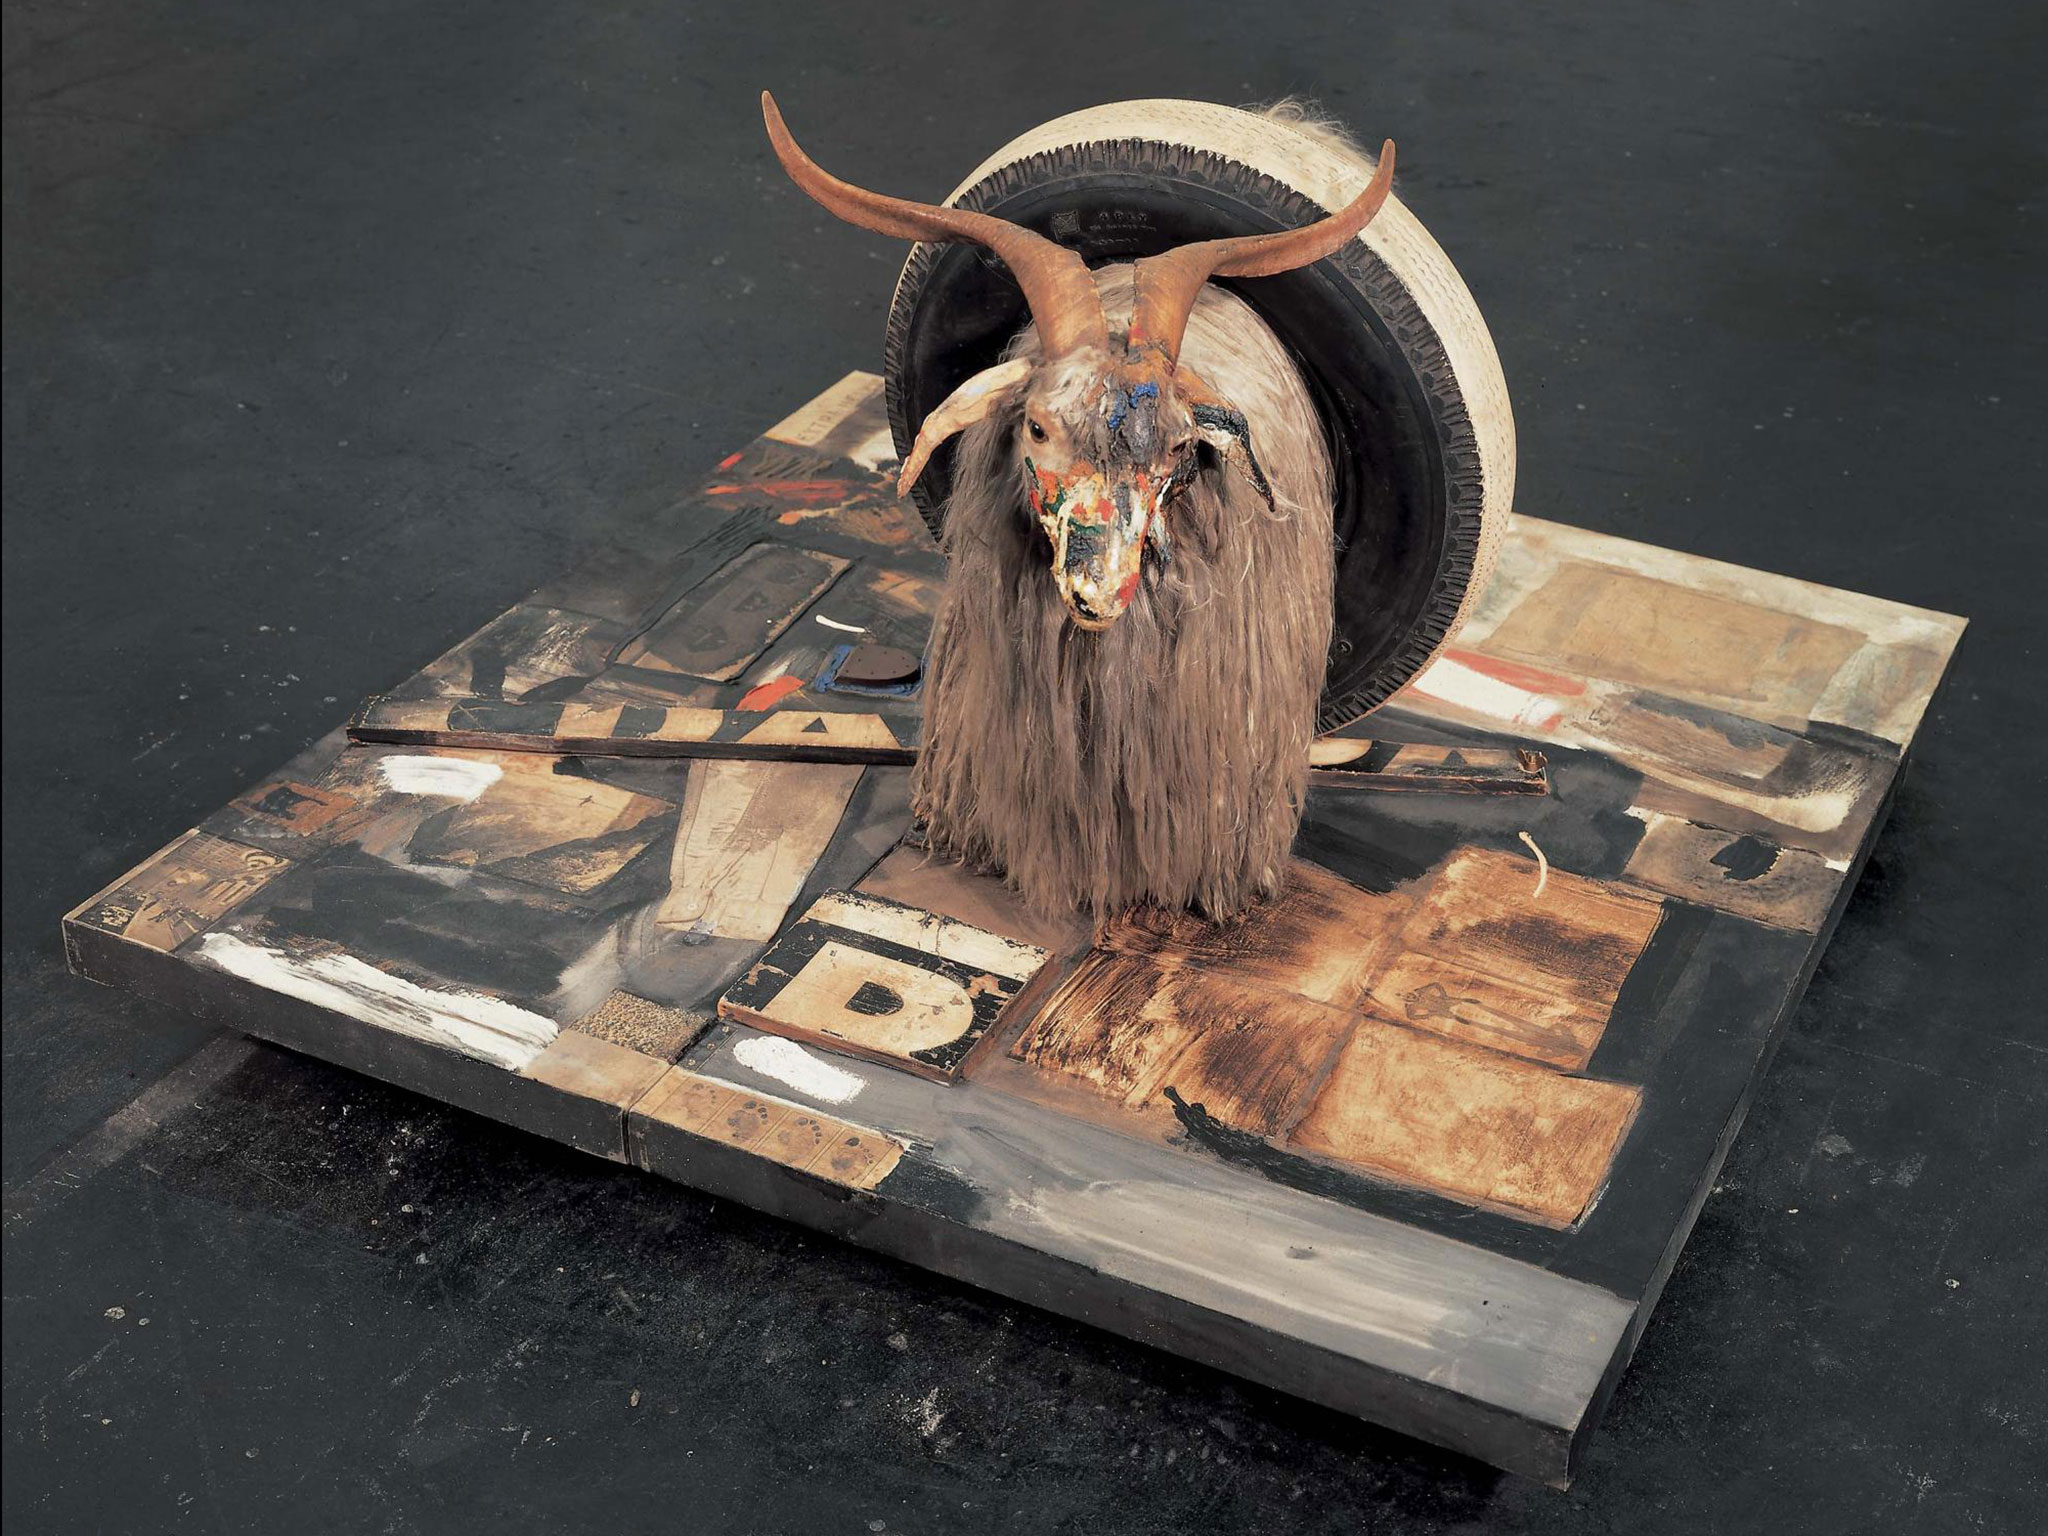 'Monogram' forms part of the Robert Rauschenberg exhibition, opening in December 2015 Tate